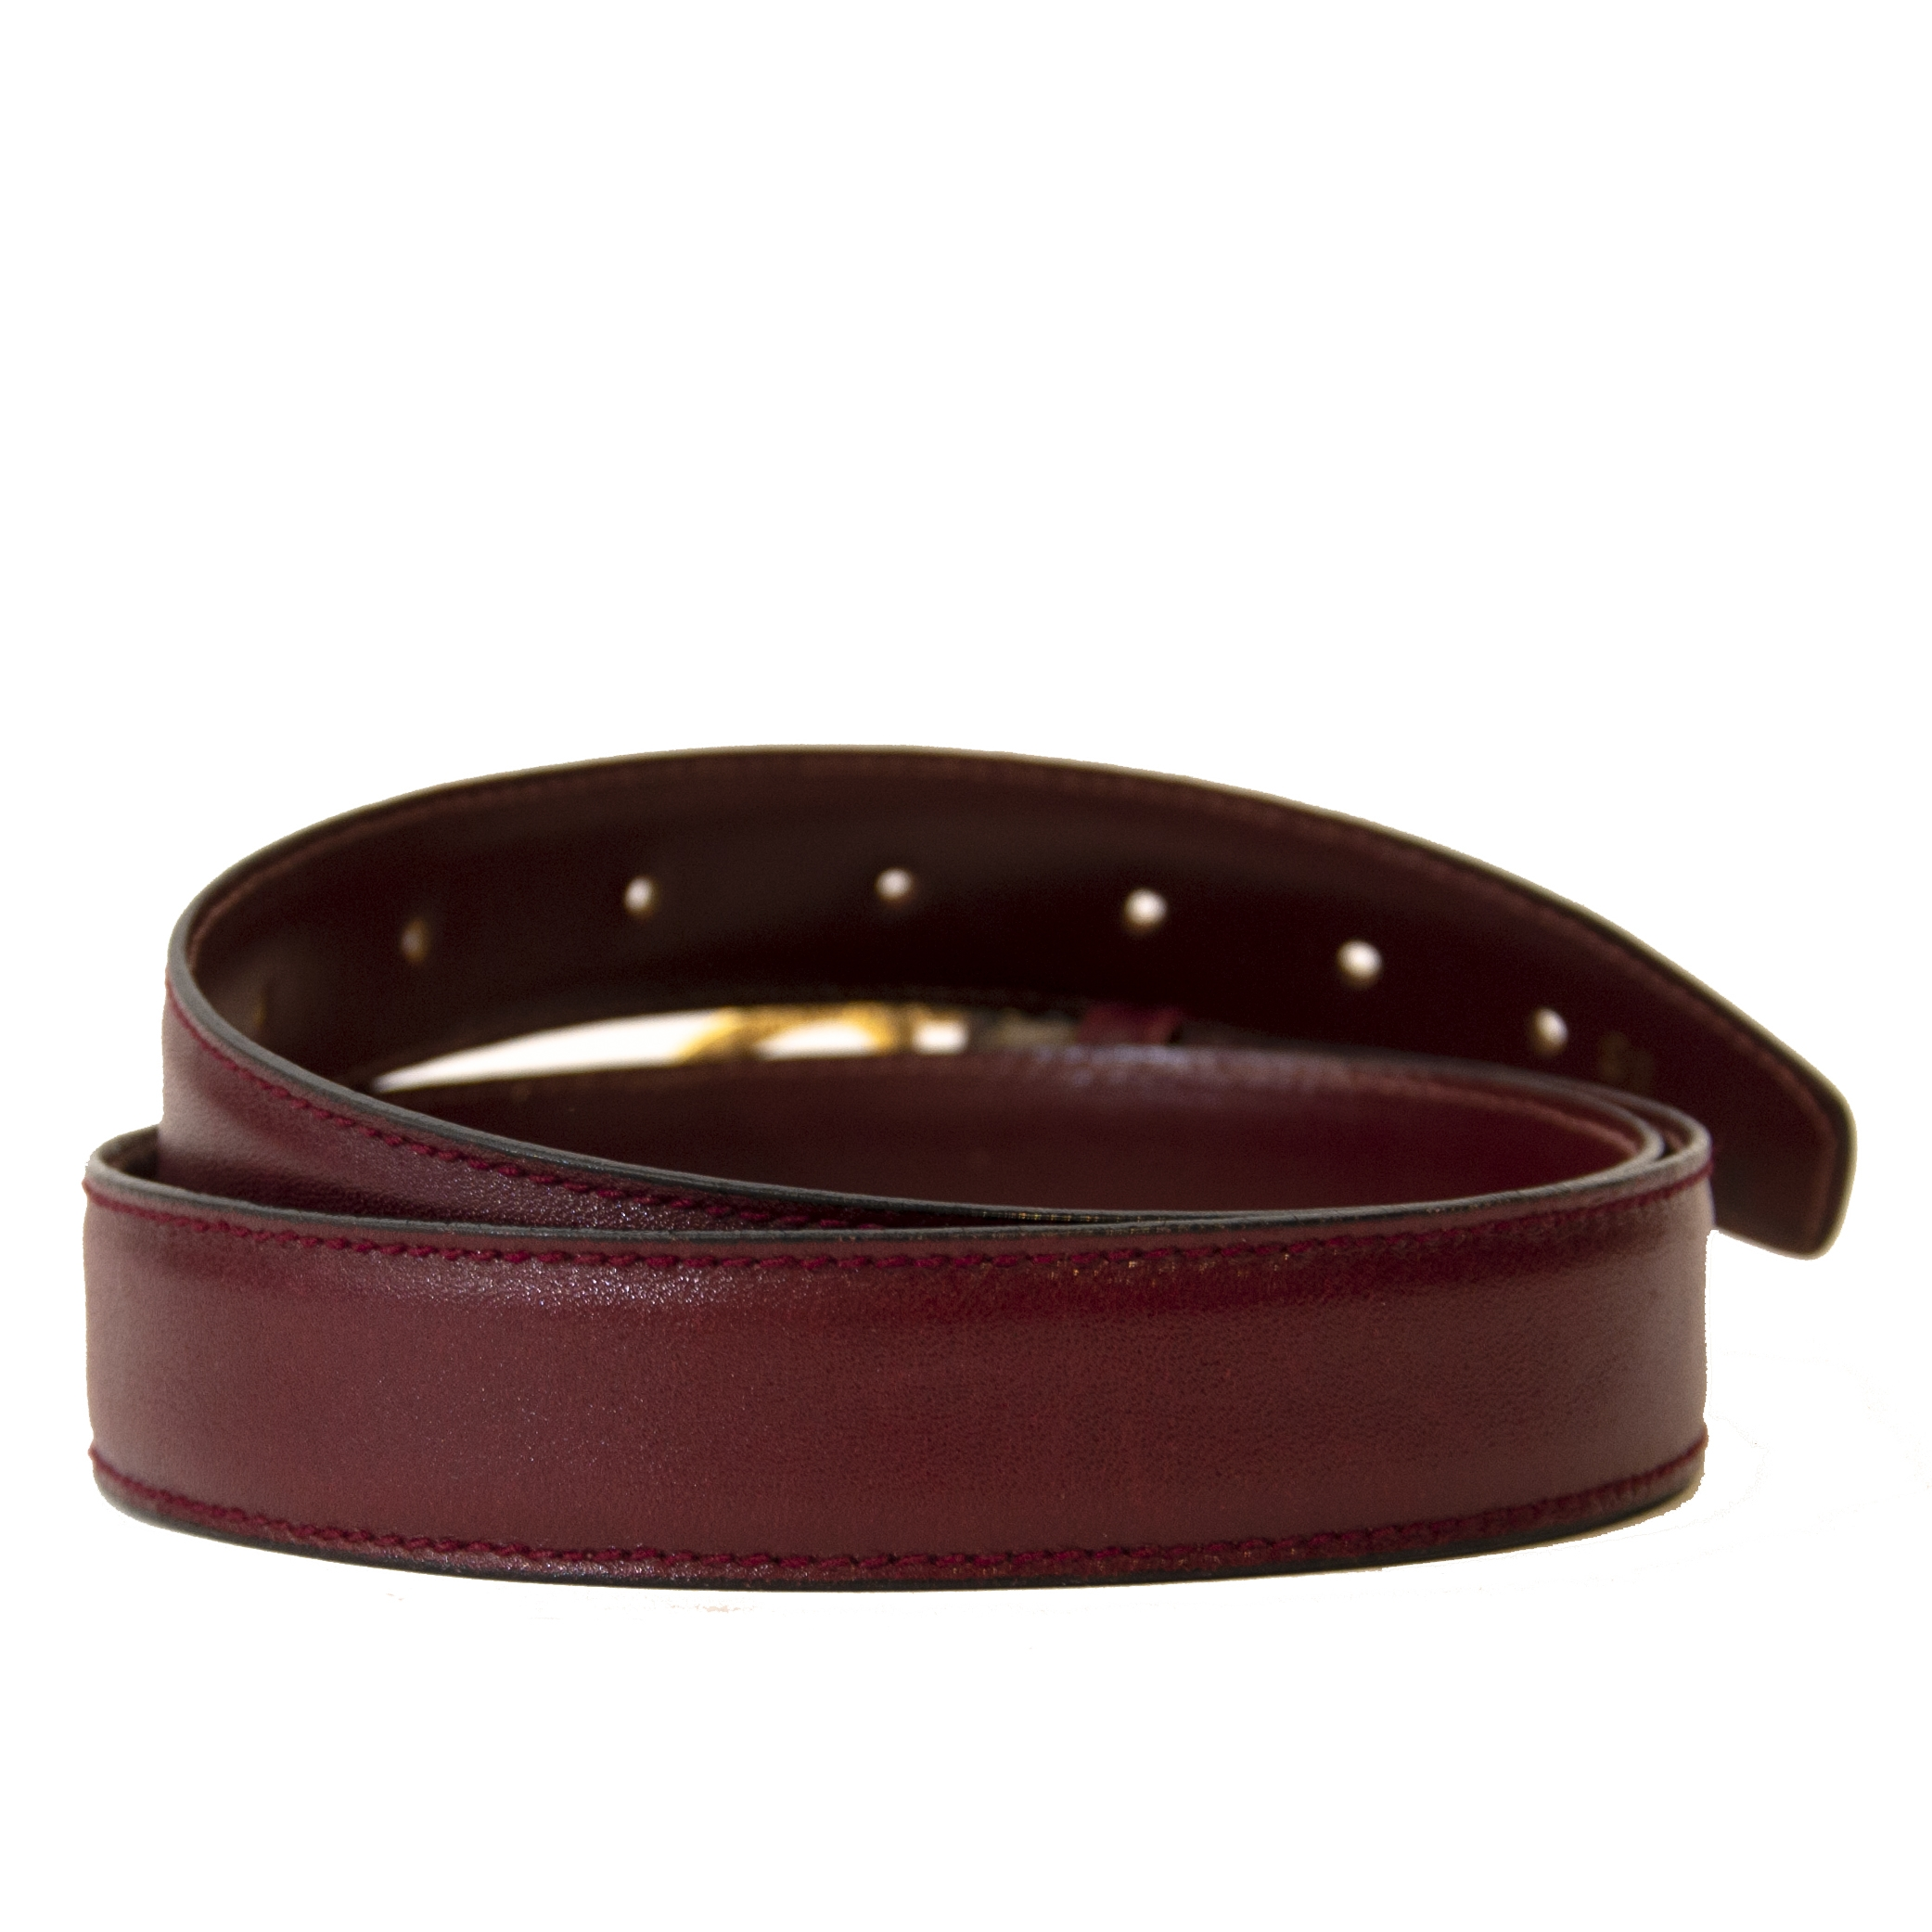 5d326cf7eea1 ... Authentic second-hand vintage Gucci Burgundy GG Belt buy online webshop  LabelLOV